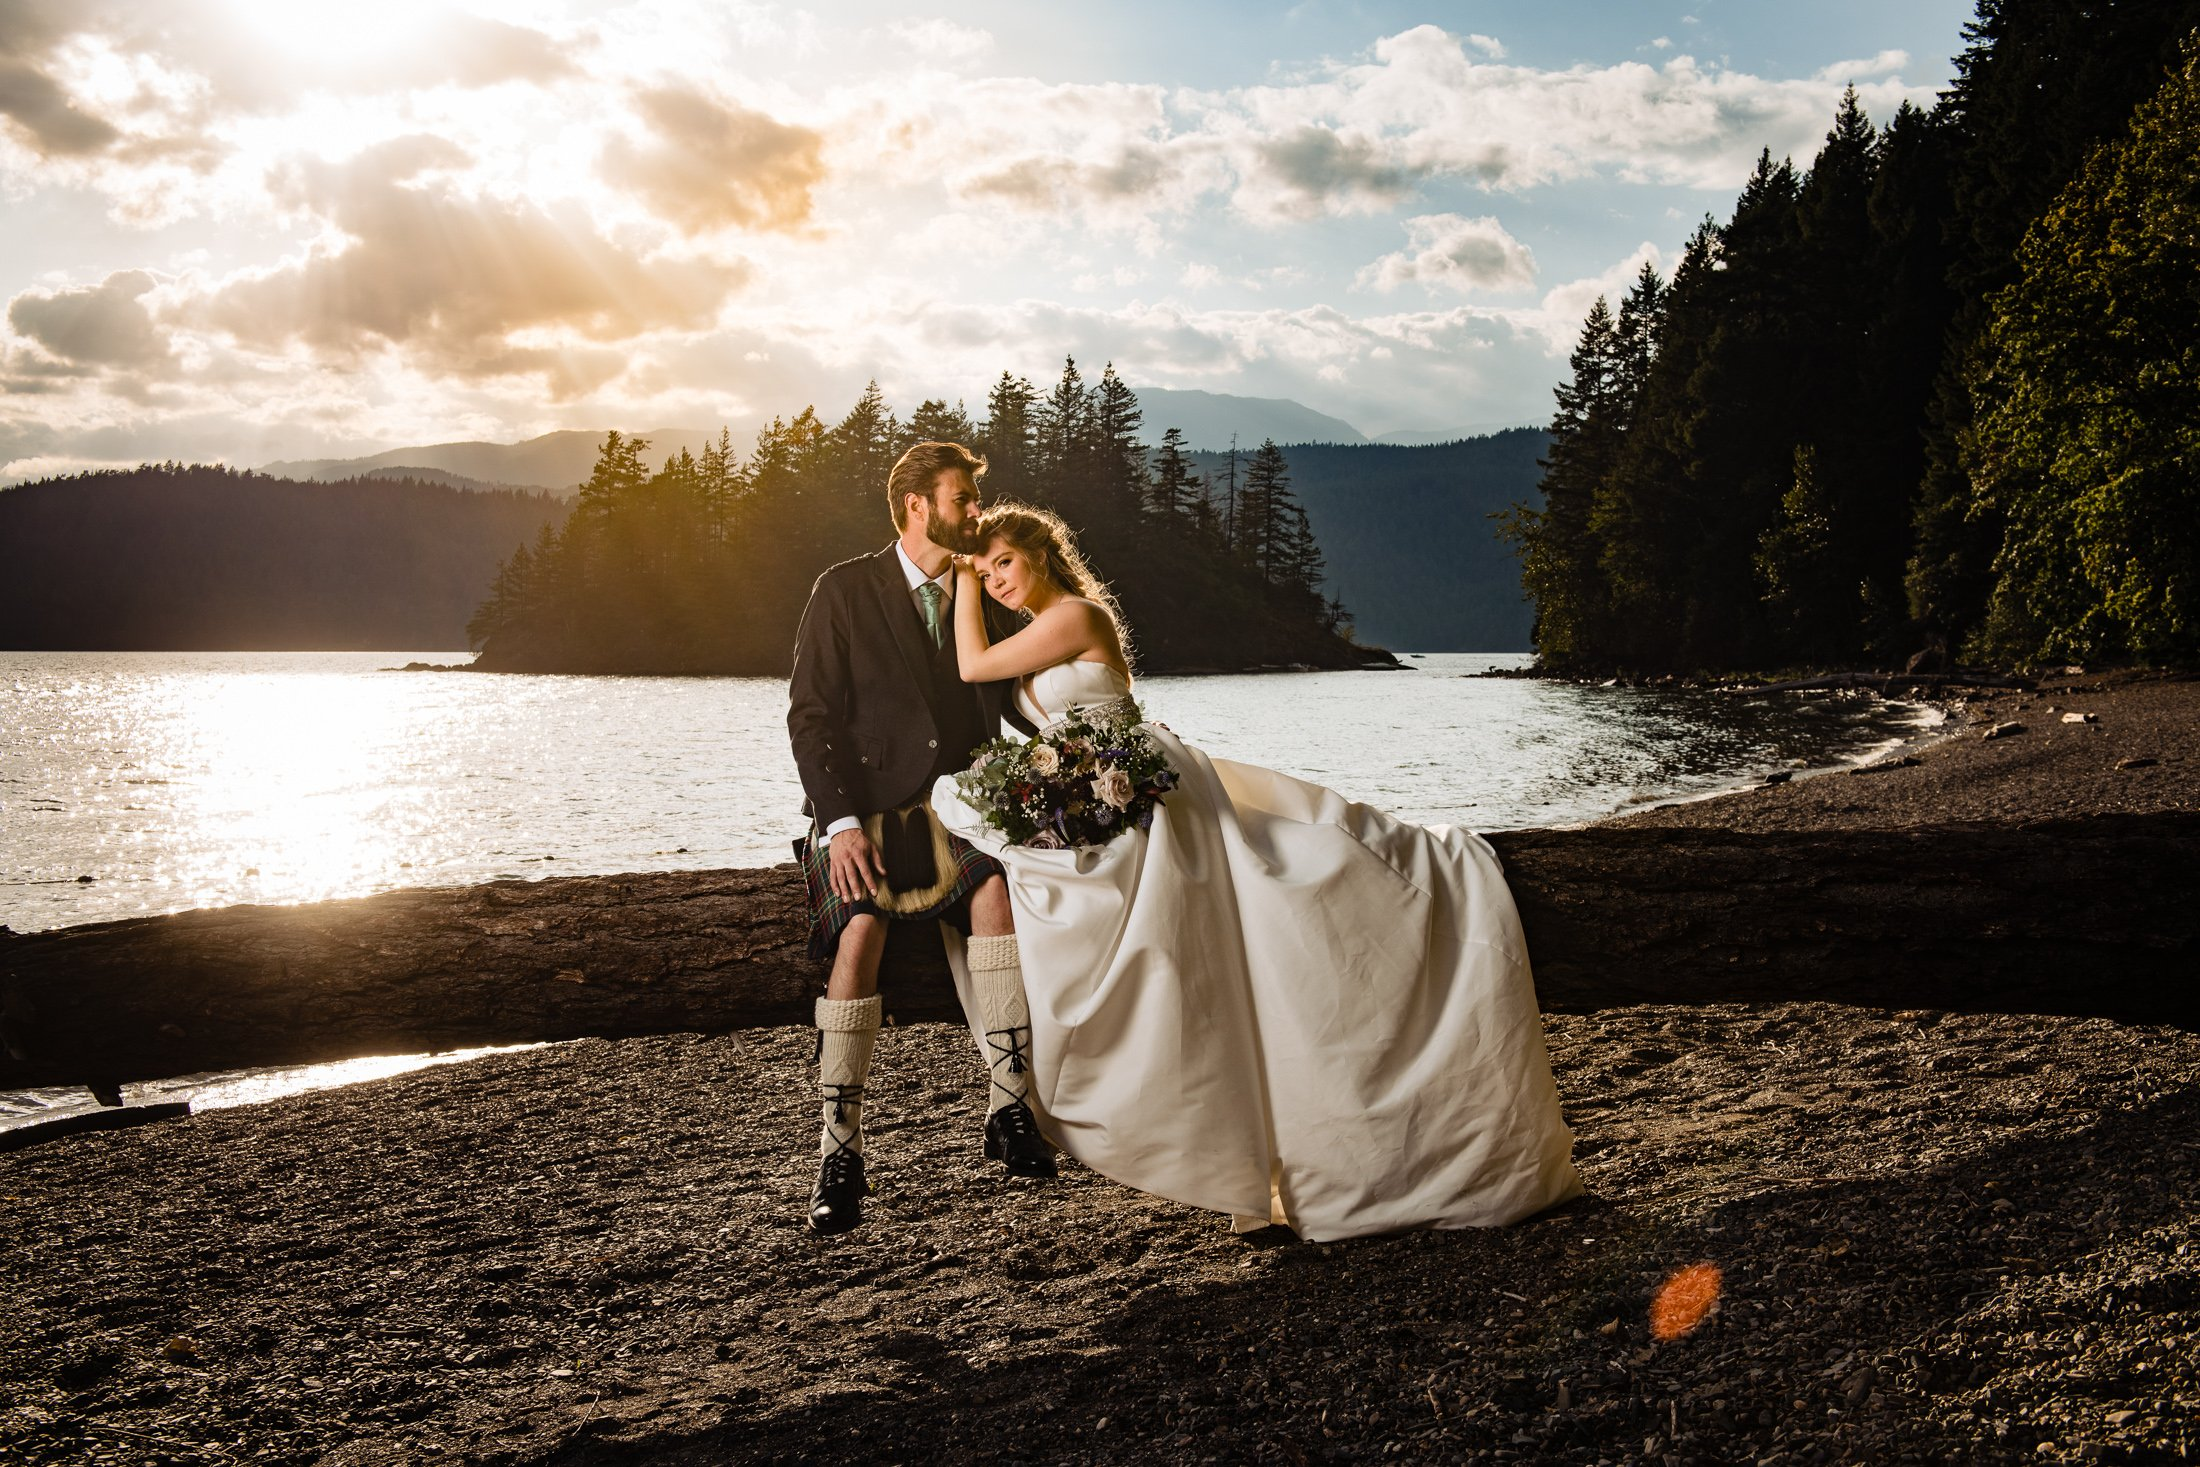 028 - pnw fraser valley wedding photography